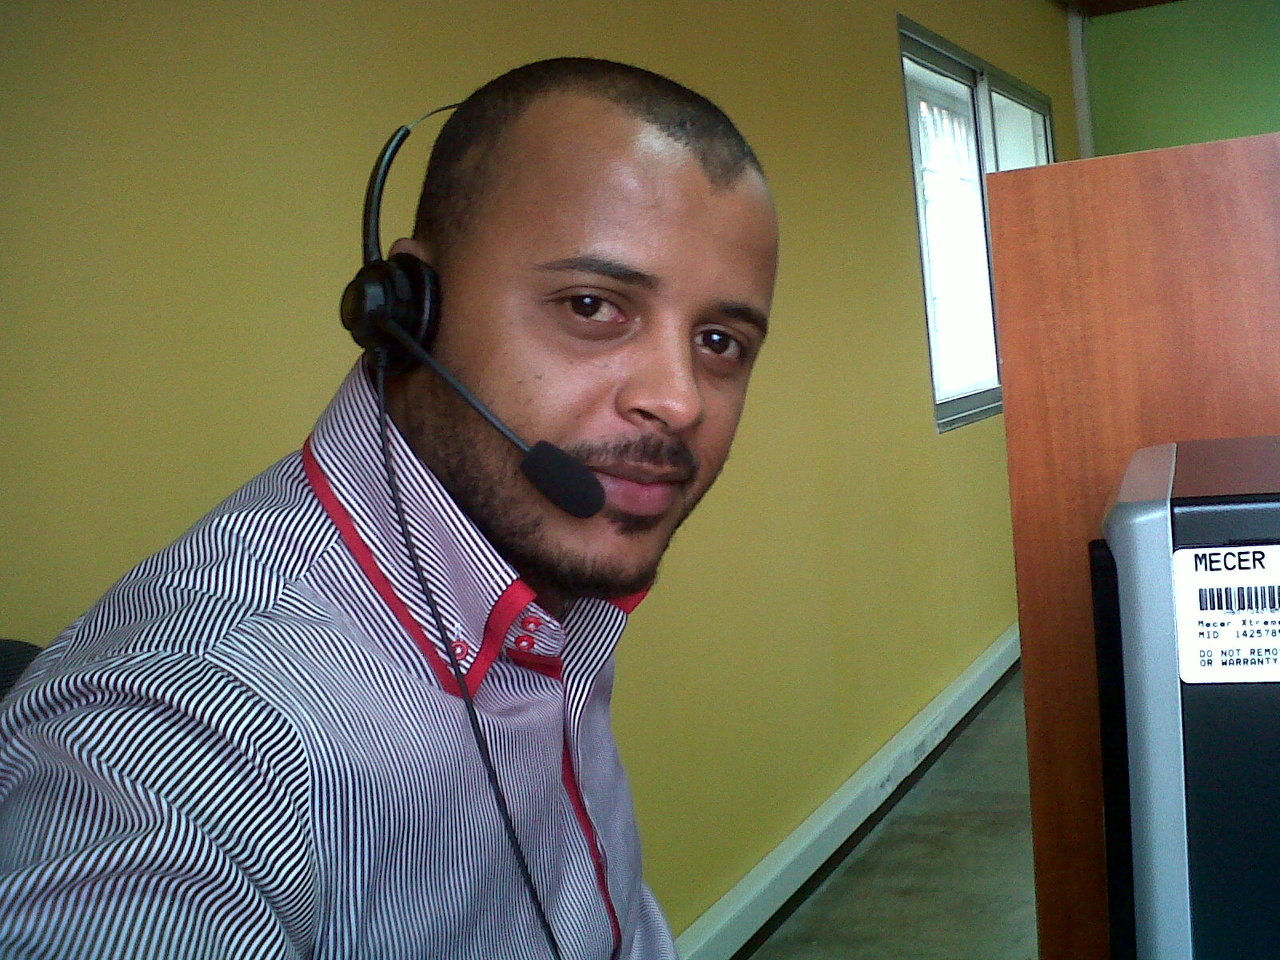 congo call center centre d u0026 39 appel t u00e9l u00e9phonique en rdc